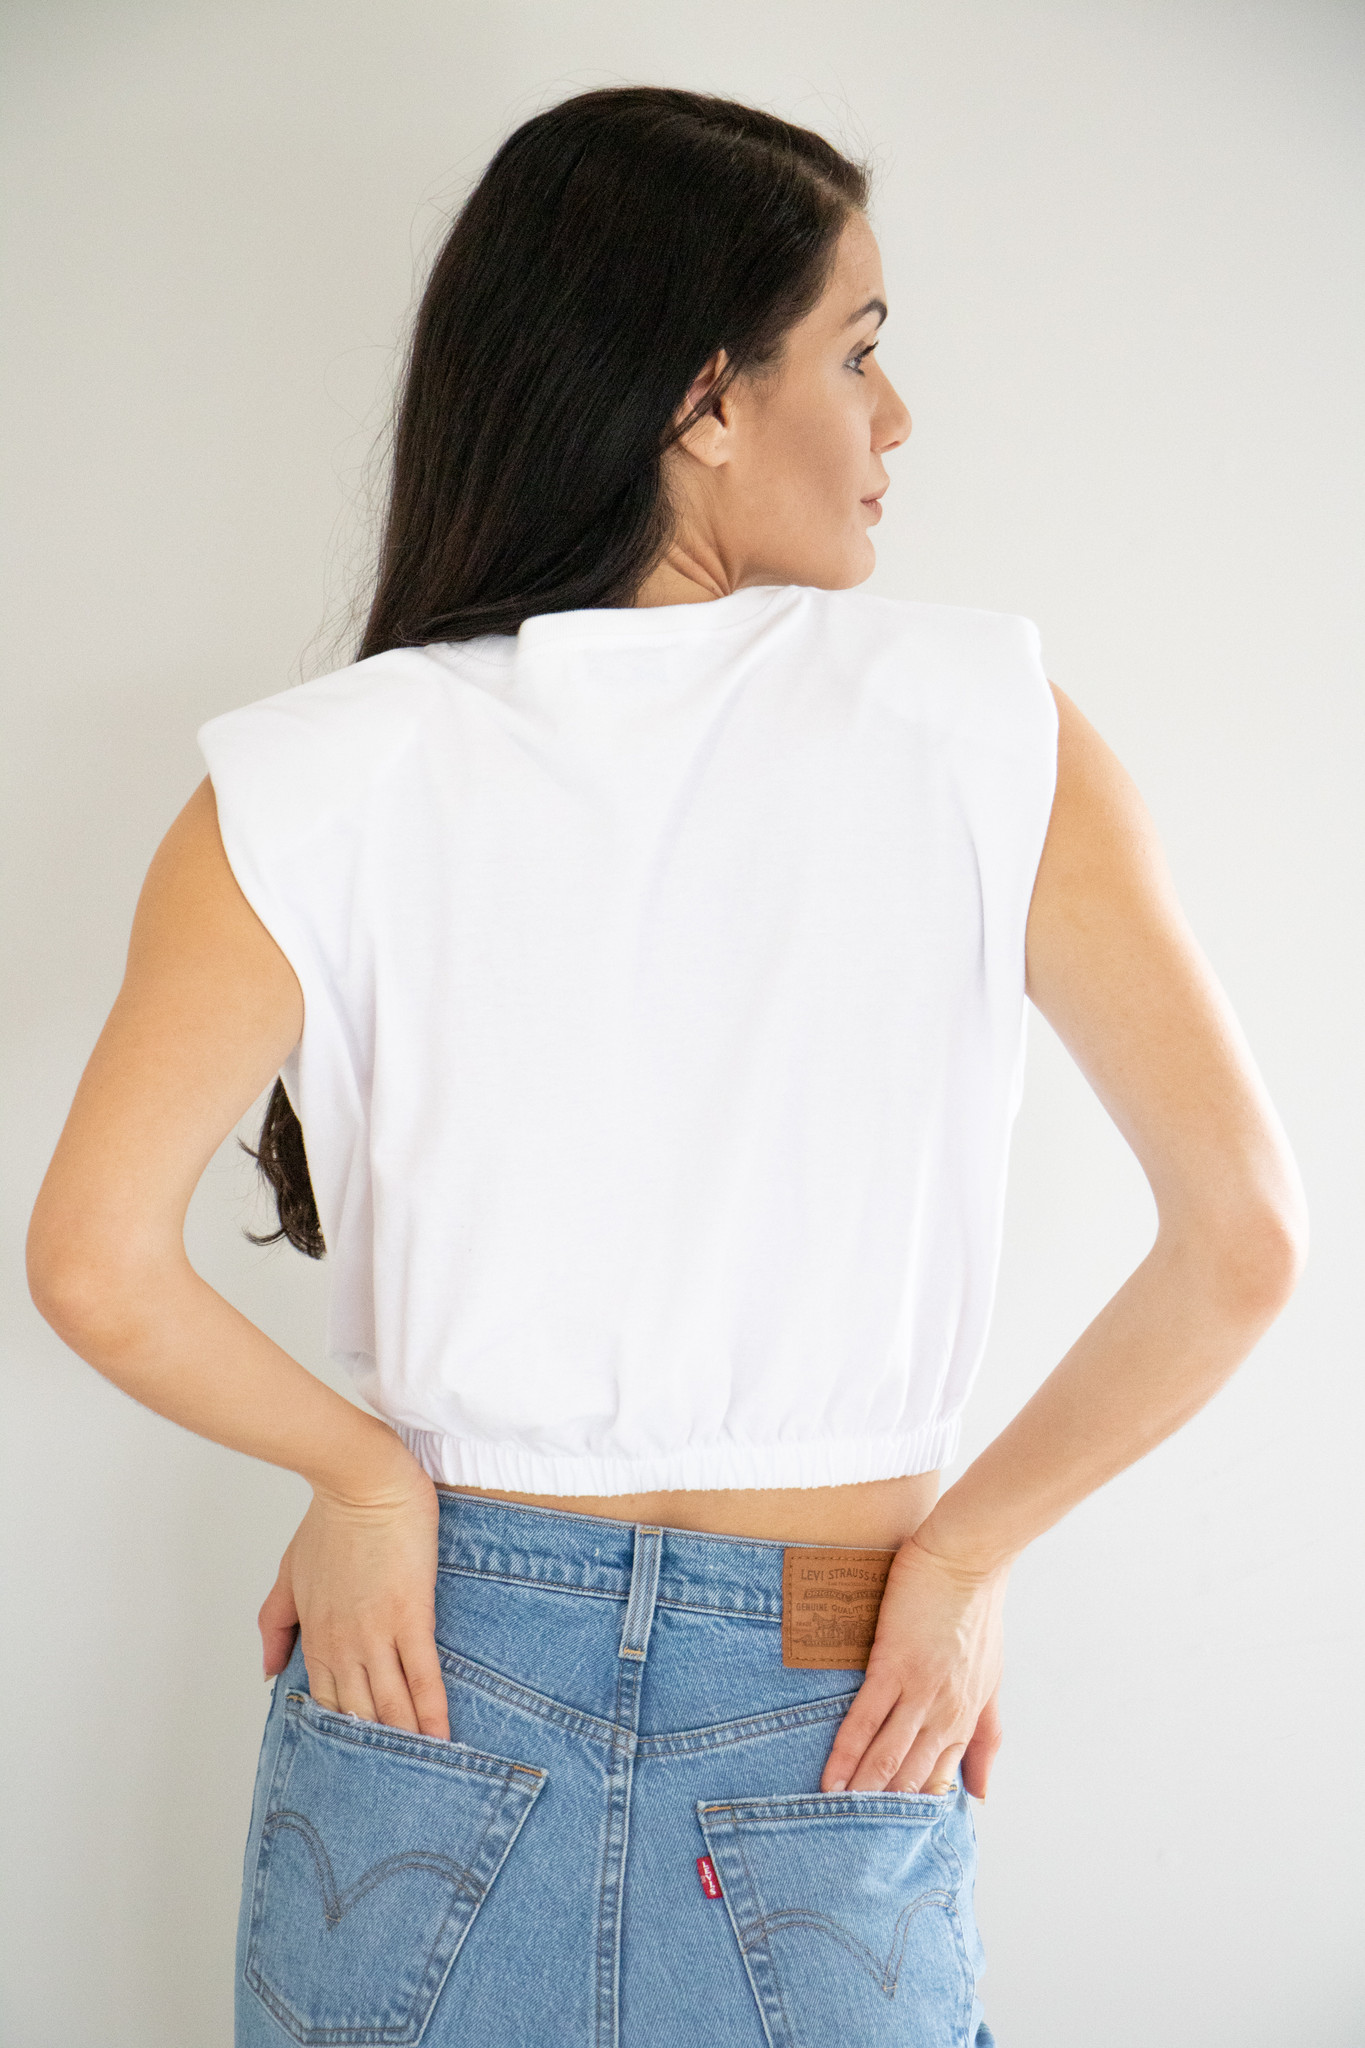 Features an elasticated hem, slightly cropped finish and long arm openings. Lightweight and airy, easy to pair with your favourite denim. Structured shoulder pads create a clean, strong line through the shoulders.